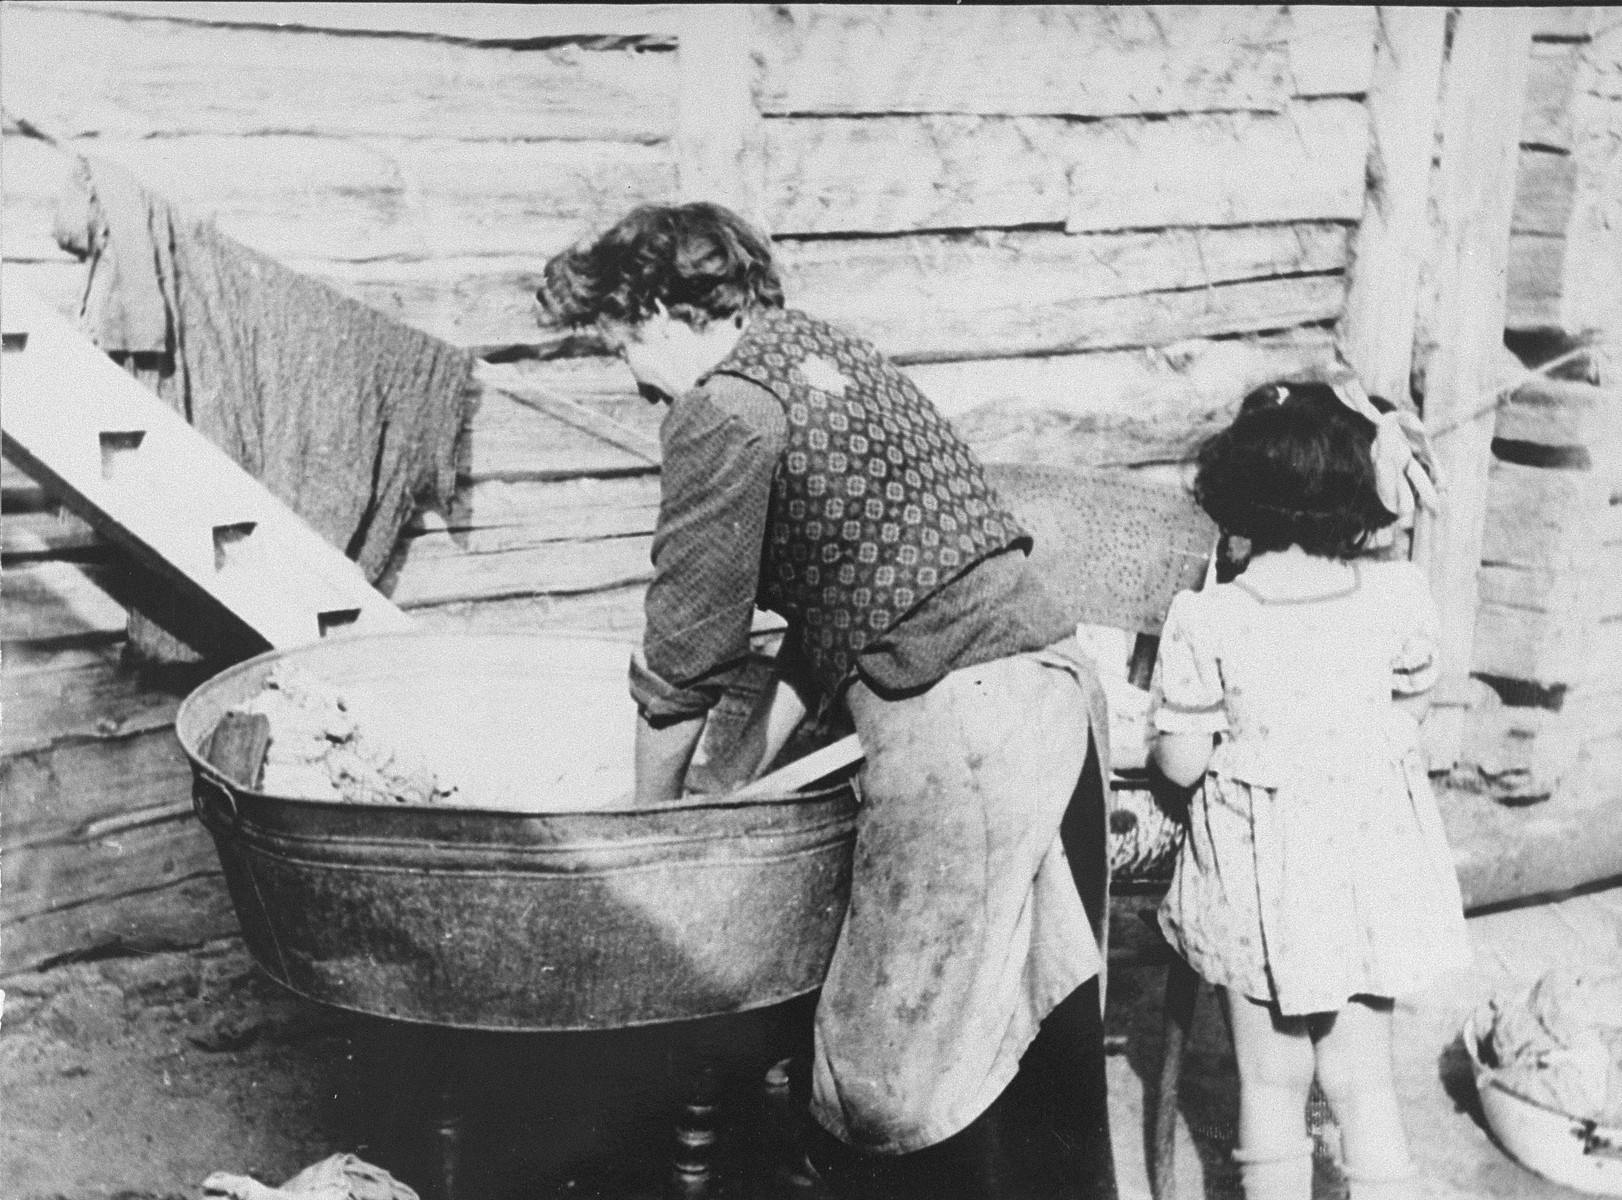 A woman does the washing in a basin outside at the ghetto laundry in the Kovno ghetto.  The laundry, which began operation on February 16, 1942, was one of 44 workshops in the ghetto.  It employed 41 persons, mostly women.  The laundry was very difficult to outfit initially since the ghetto had no sewer system or water mains, but ghetto engineers installed heating and water pipes to make it fully operational.  The laundry cleaned clothing and linens of German civil administrators, military and police.   In addition to providing labor for women who would have found it physically or personally difficult to join brigades outside of the ghetto, the laundry provided another benefit as well.  The ghetto was not allocated a soap ration.  Therefore, during the summer months, workers at the laundry frequently threw linen straight into the river for easy cleaning and channeled the saved soap to ghetto inhabitants.